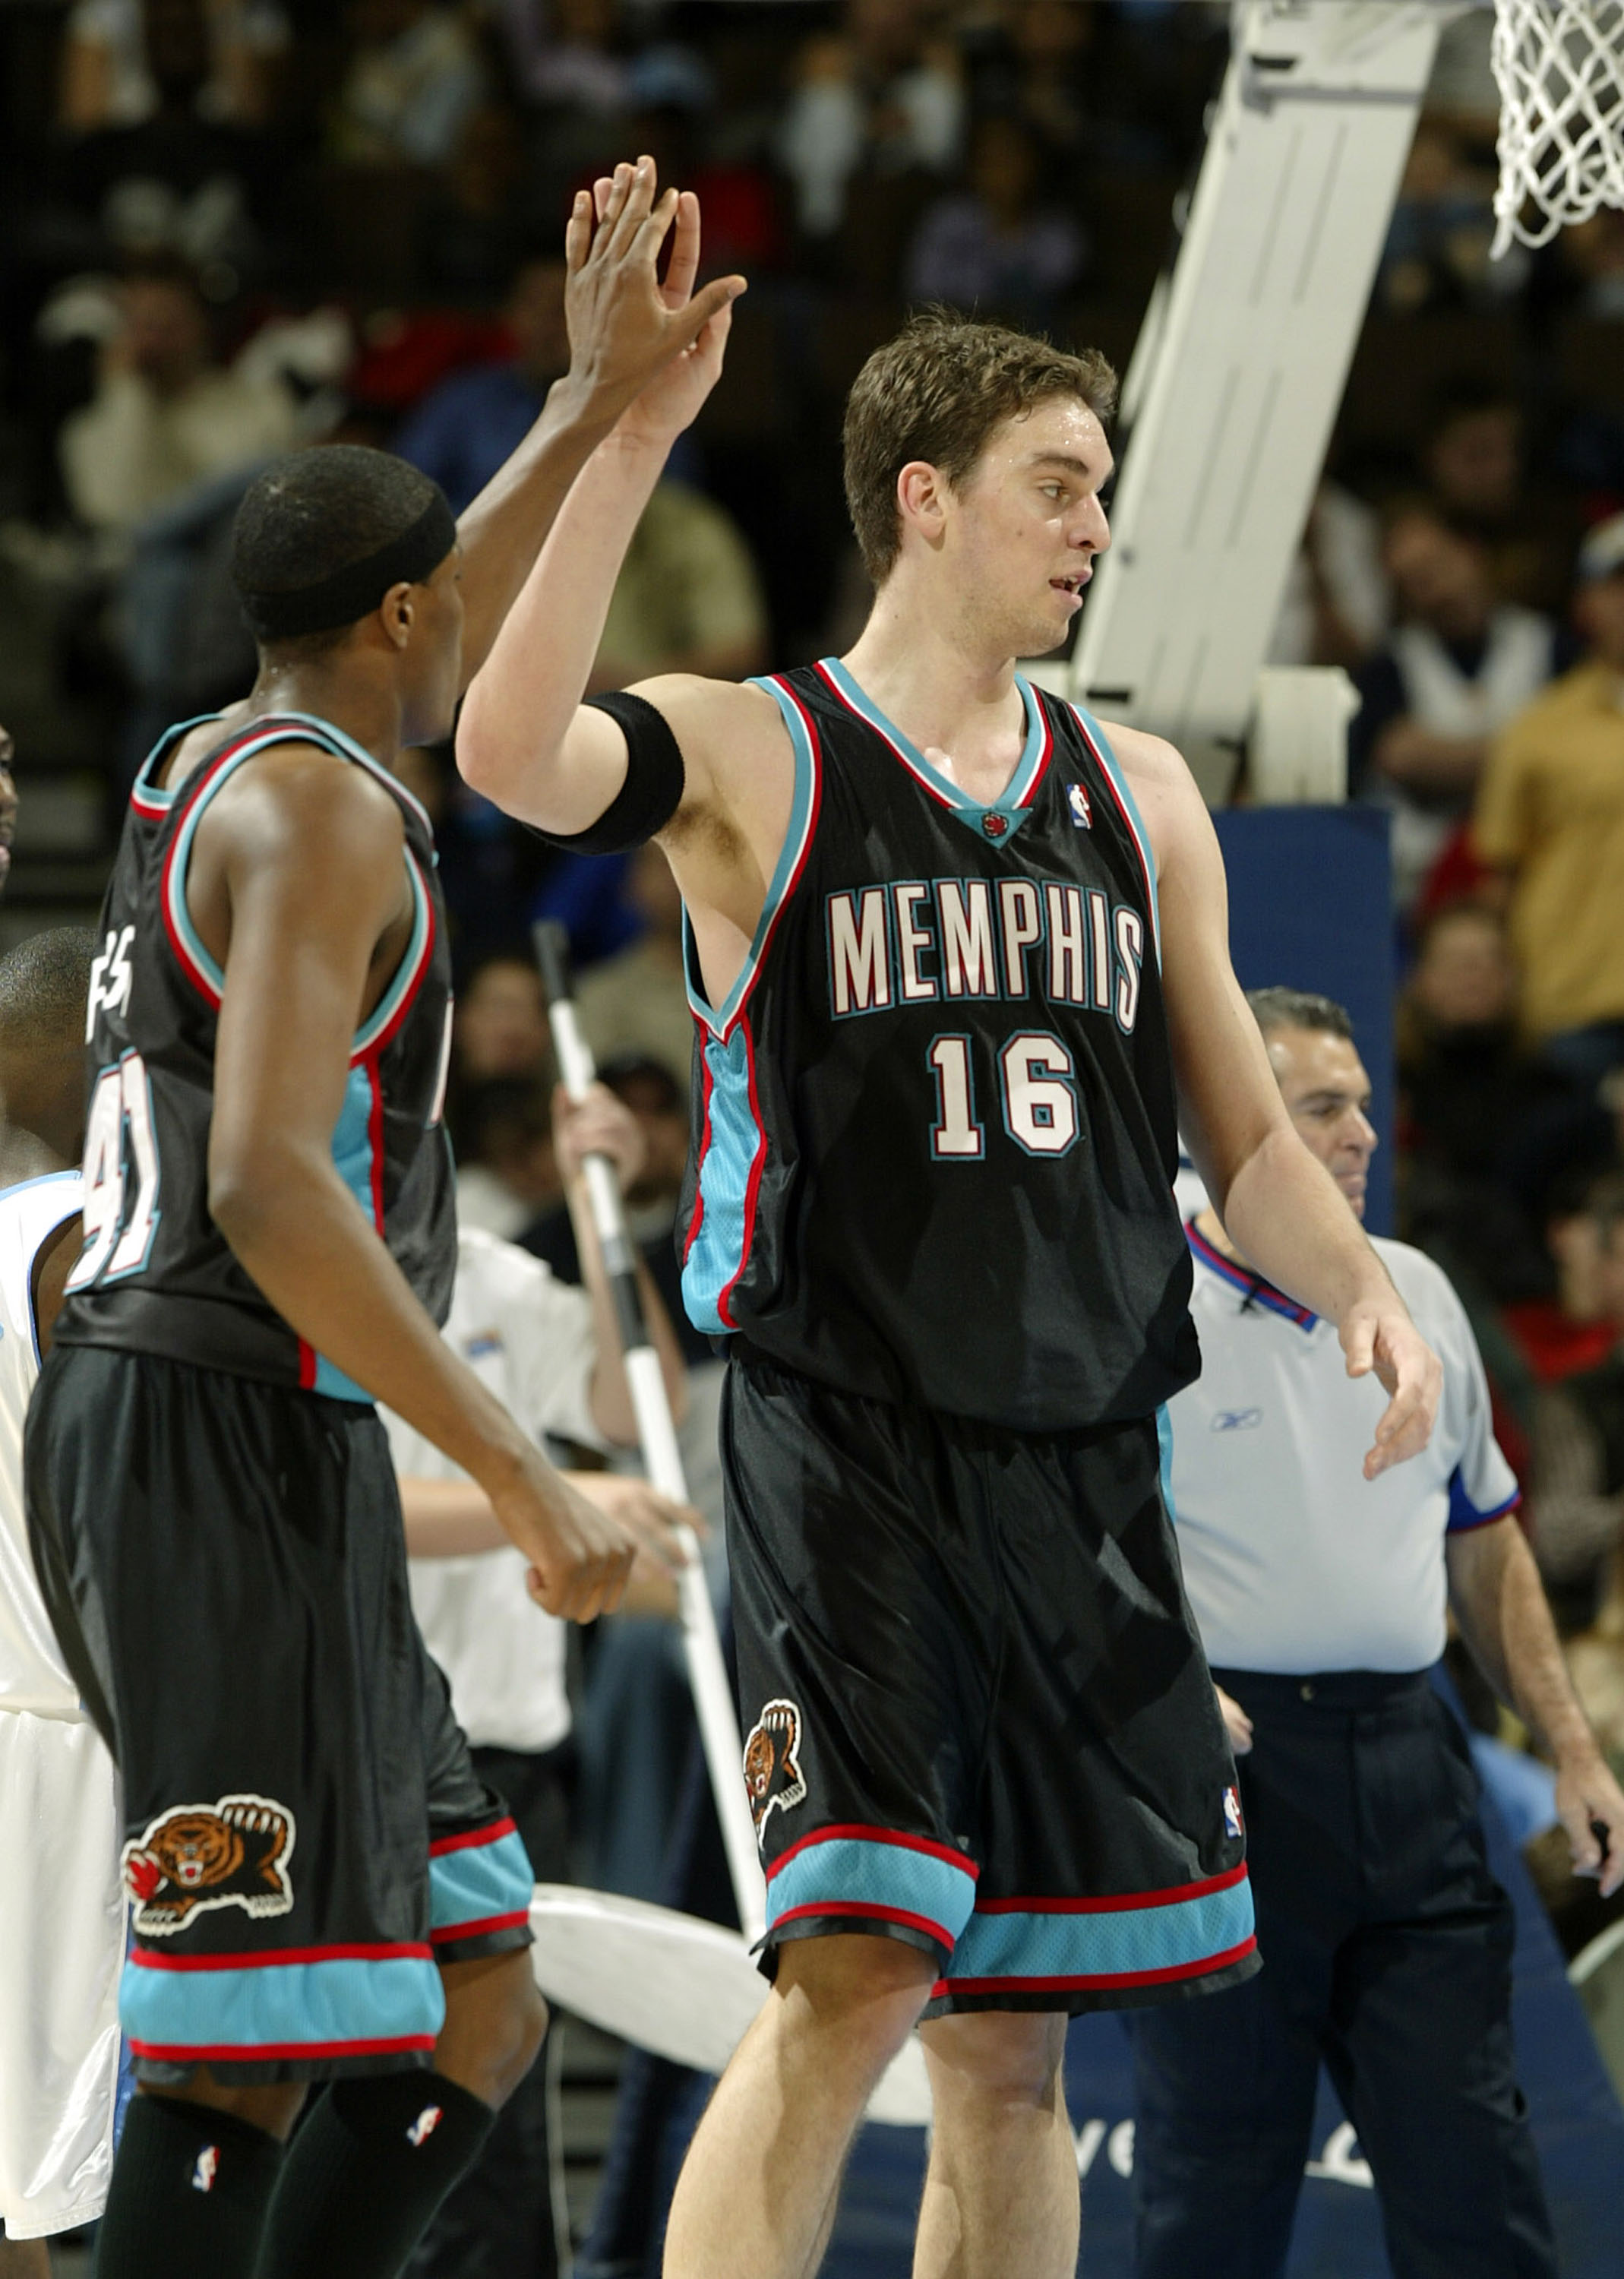 DENVER - DECEMBER 22:  Pau Gasol #16 of the Memphis Grizzlies high fives James Posey #41 after picking up a free throw against the Denver Nuggets in the first half December 22, 2003 at the Pepsi Center in Denver, Colorado.  NOTE TO USER:  User expressly a